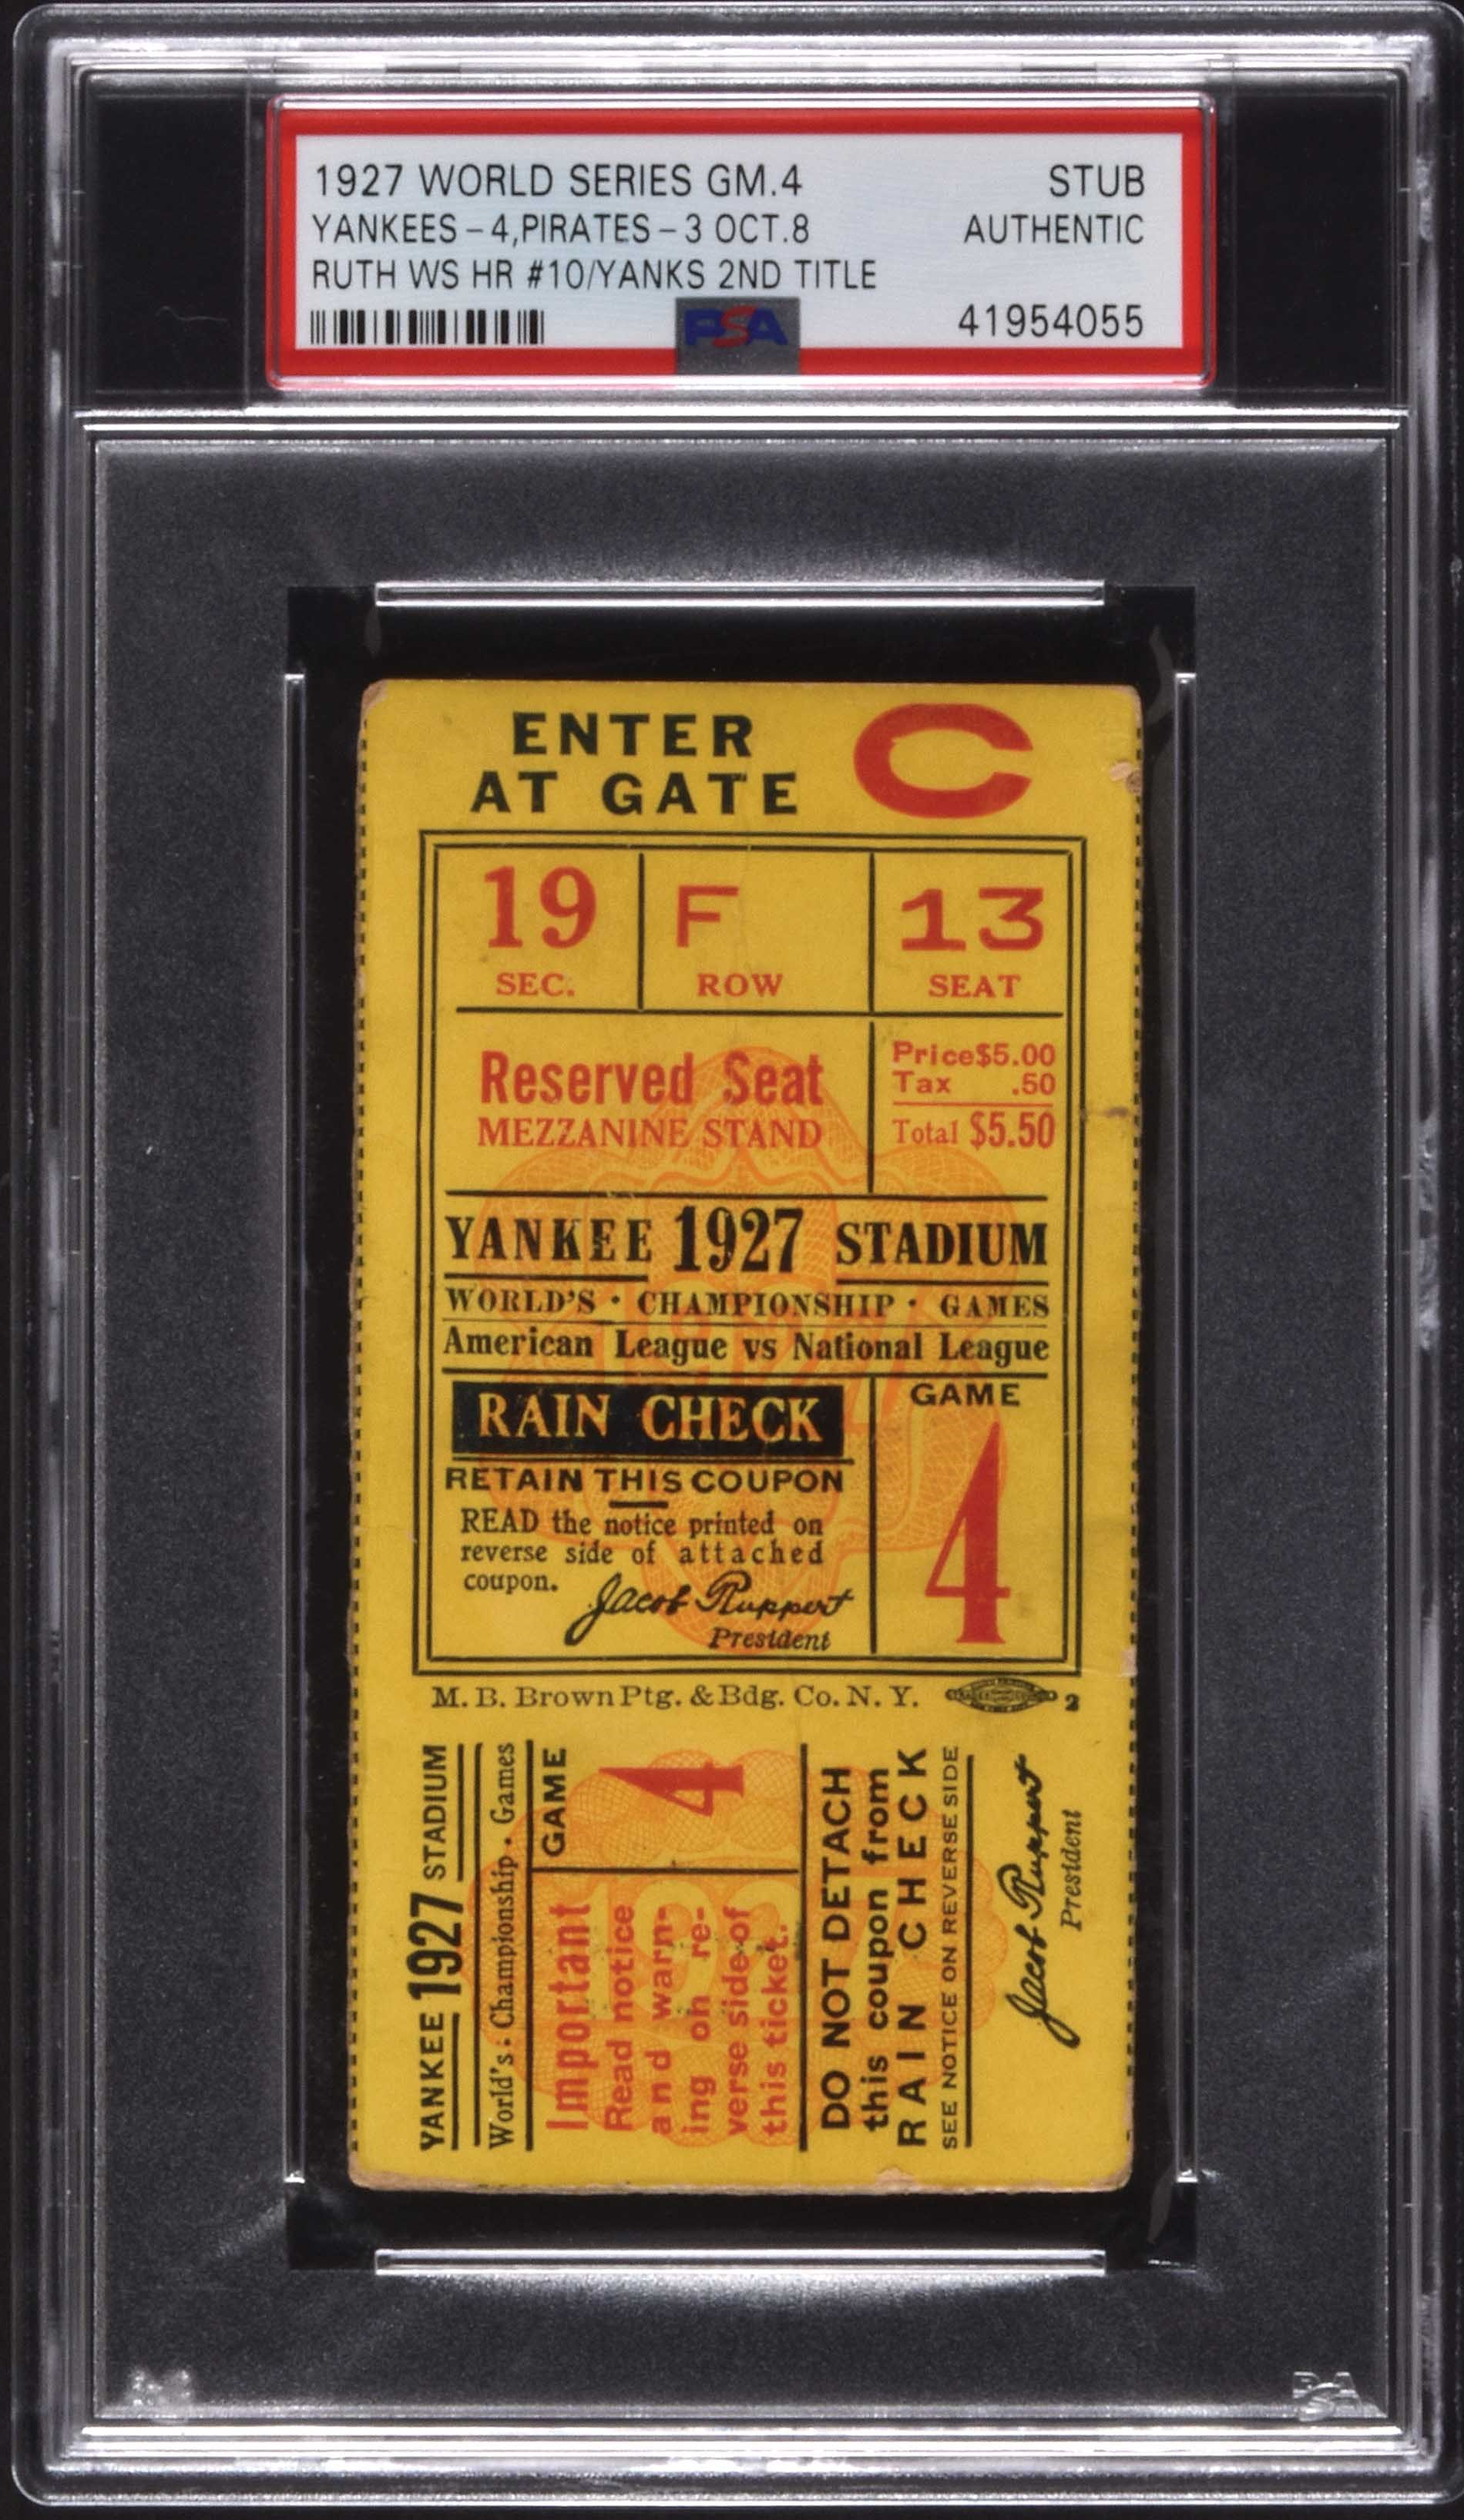 1927 New York Yankees World Series Ticket Stub - Game 4